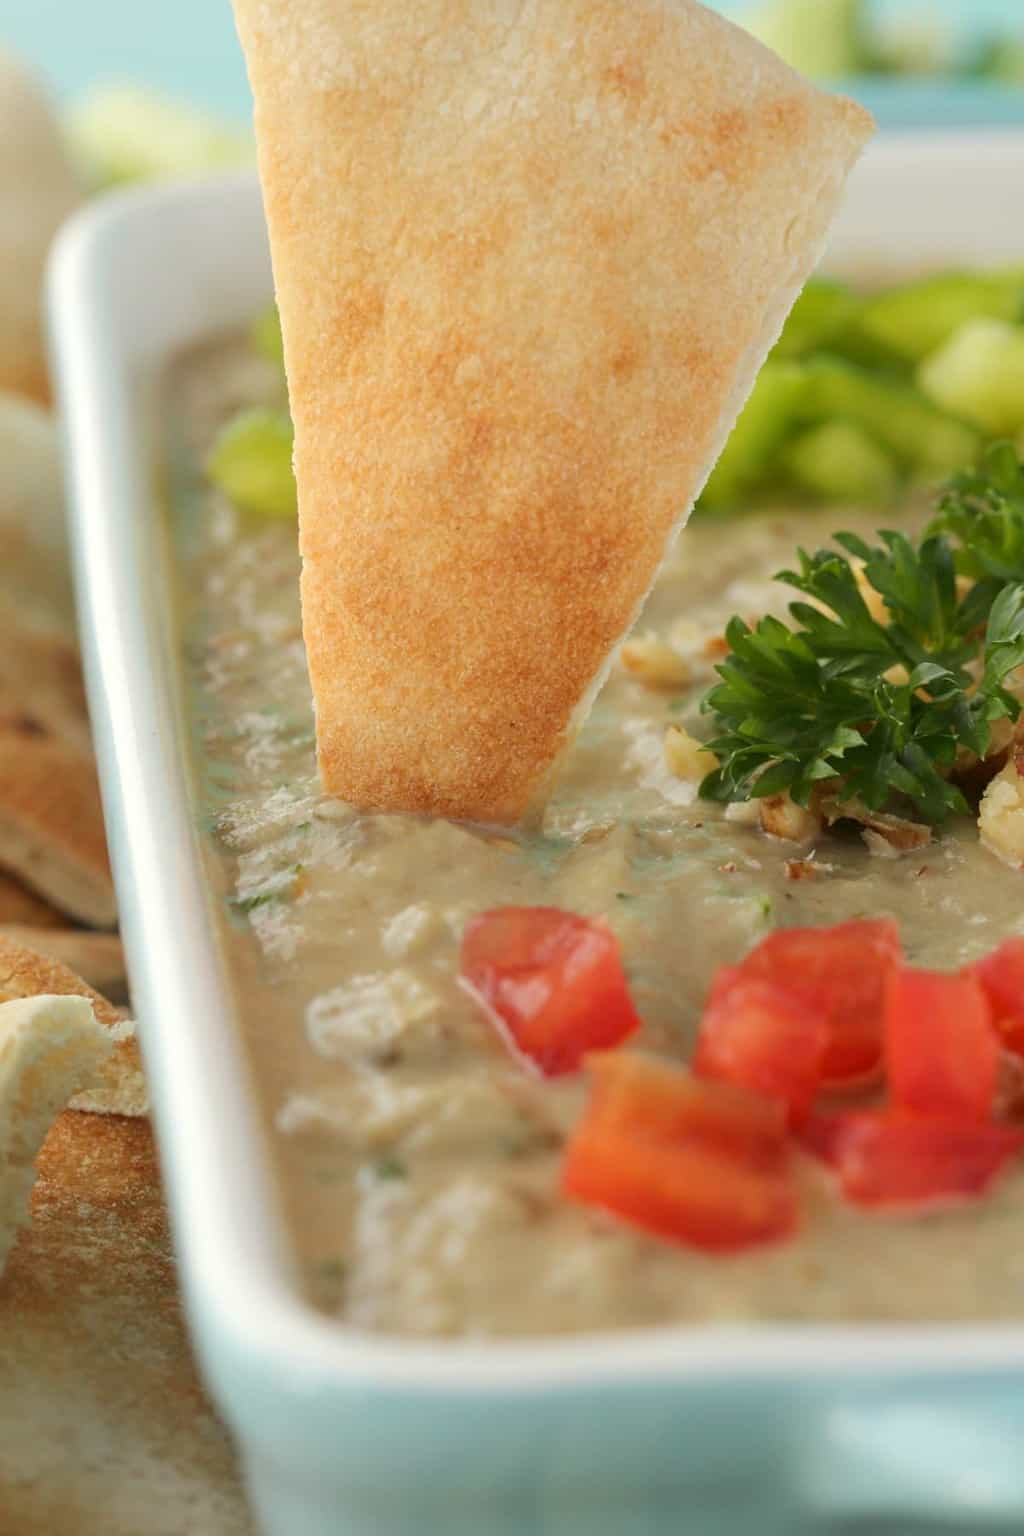 A pita bread dipping into eggplant dip in a blue and white serving dish.